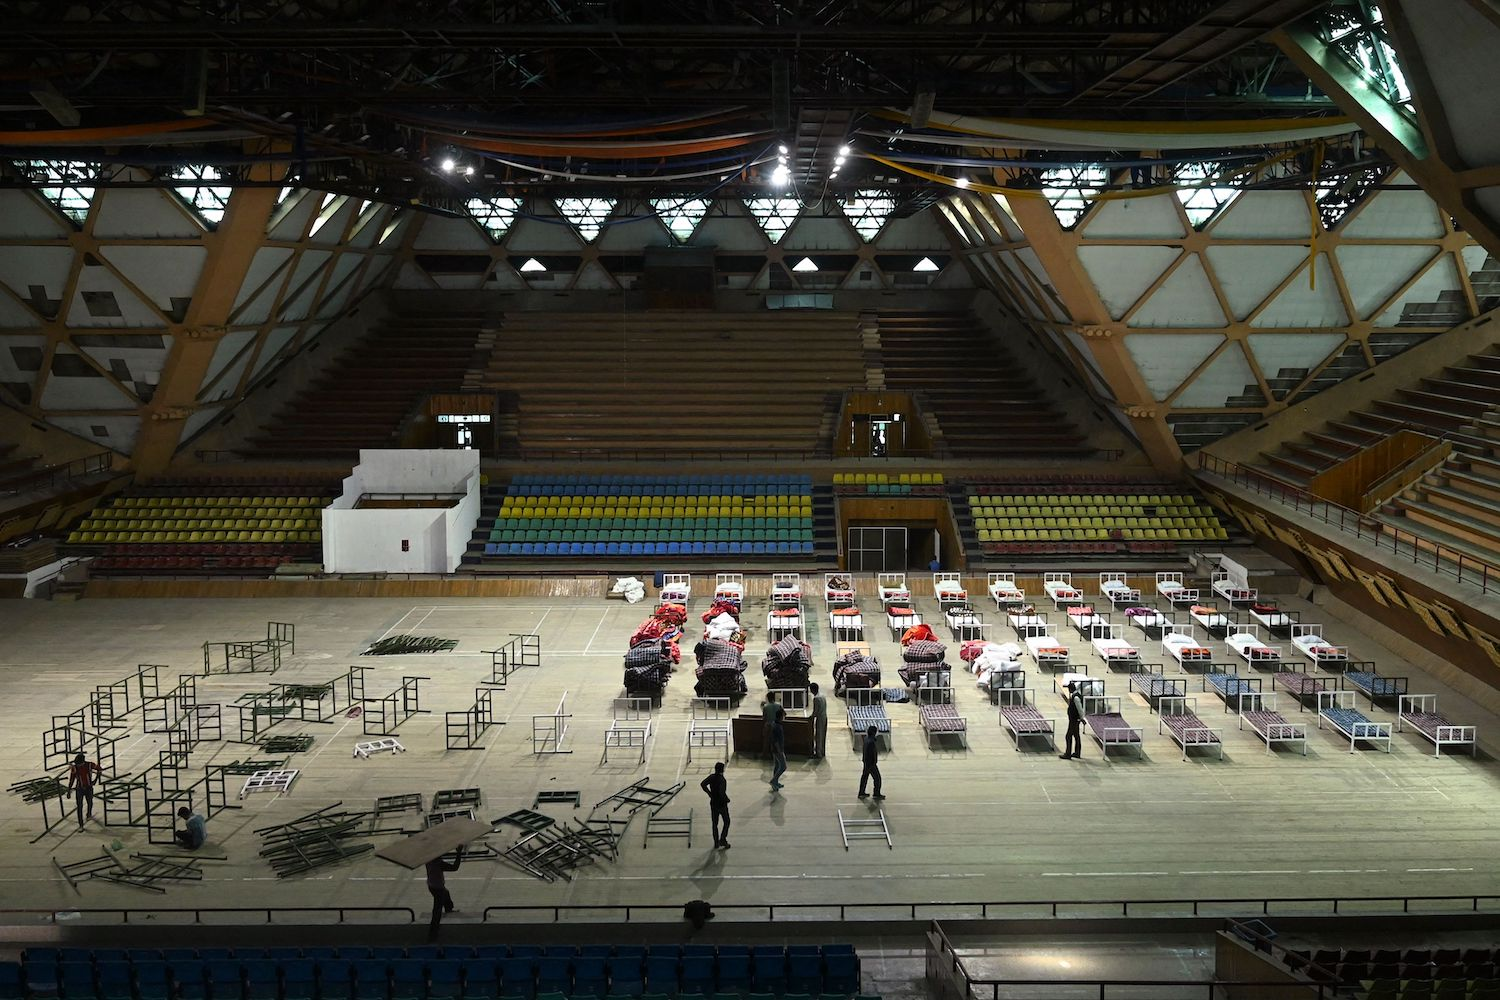 Workers prepare to convert an indoor stadium into a coronavirus center in Srinagar, Indian-administered Kashmir, on April 27.